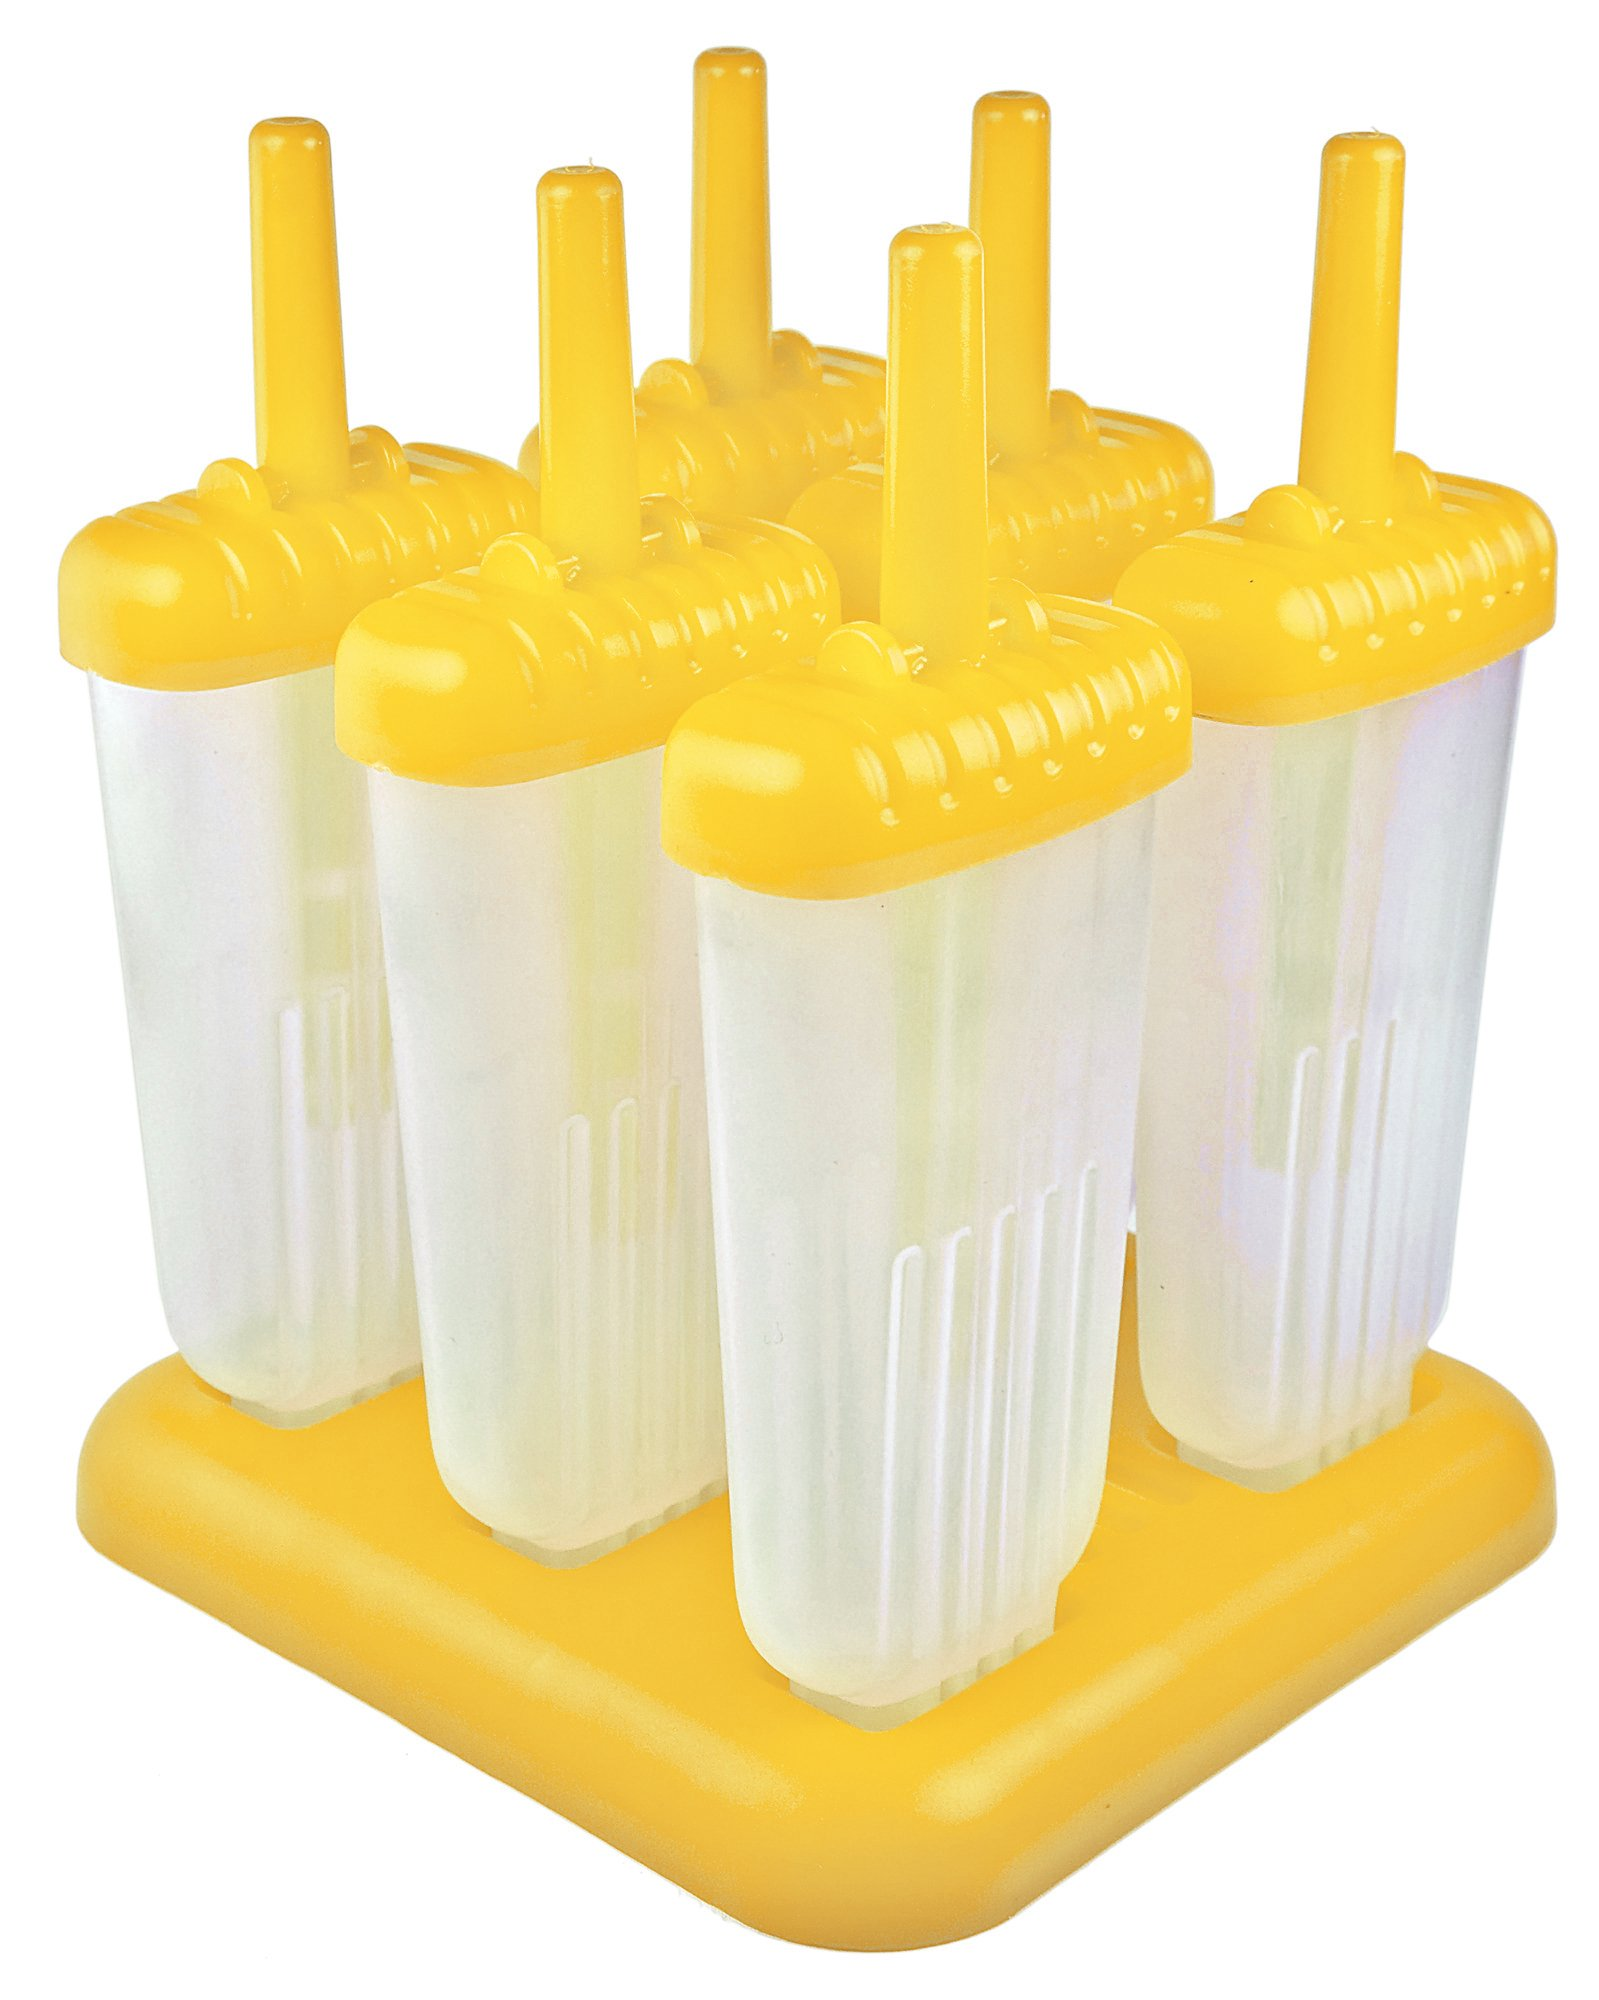 Tovolo Groovy Pop Molds, Drip-Guard Handle, 4 Ounces, Yellow - Set of 6